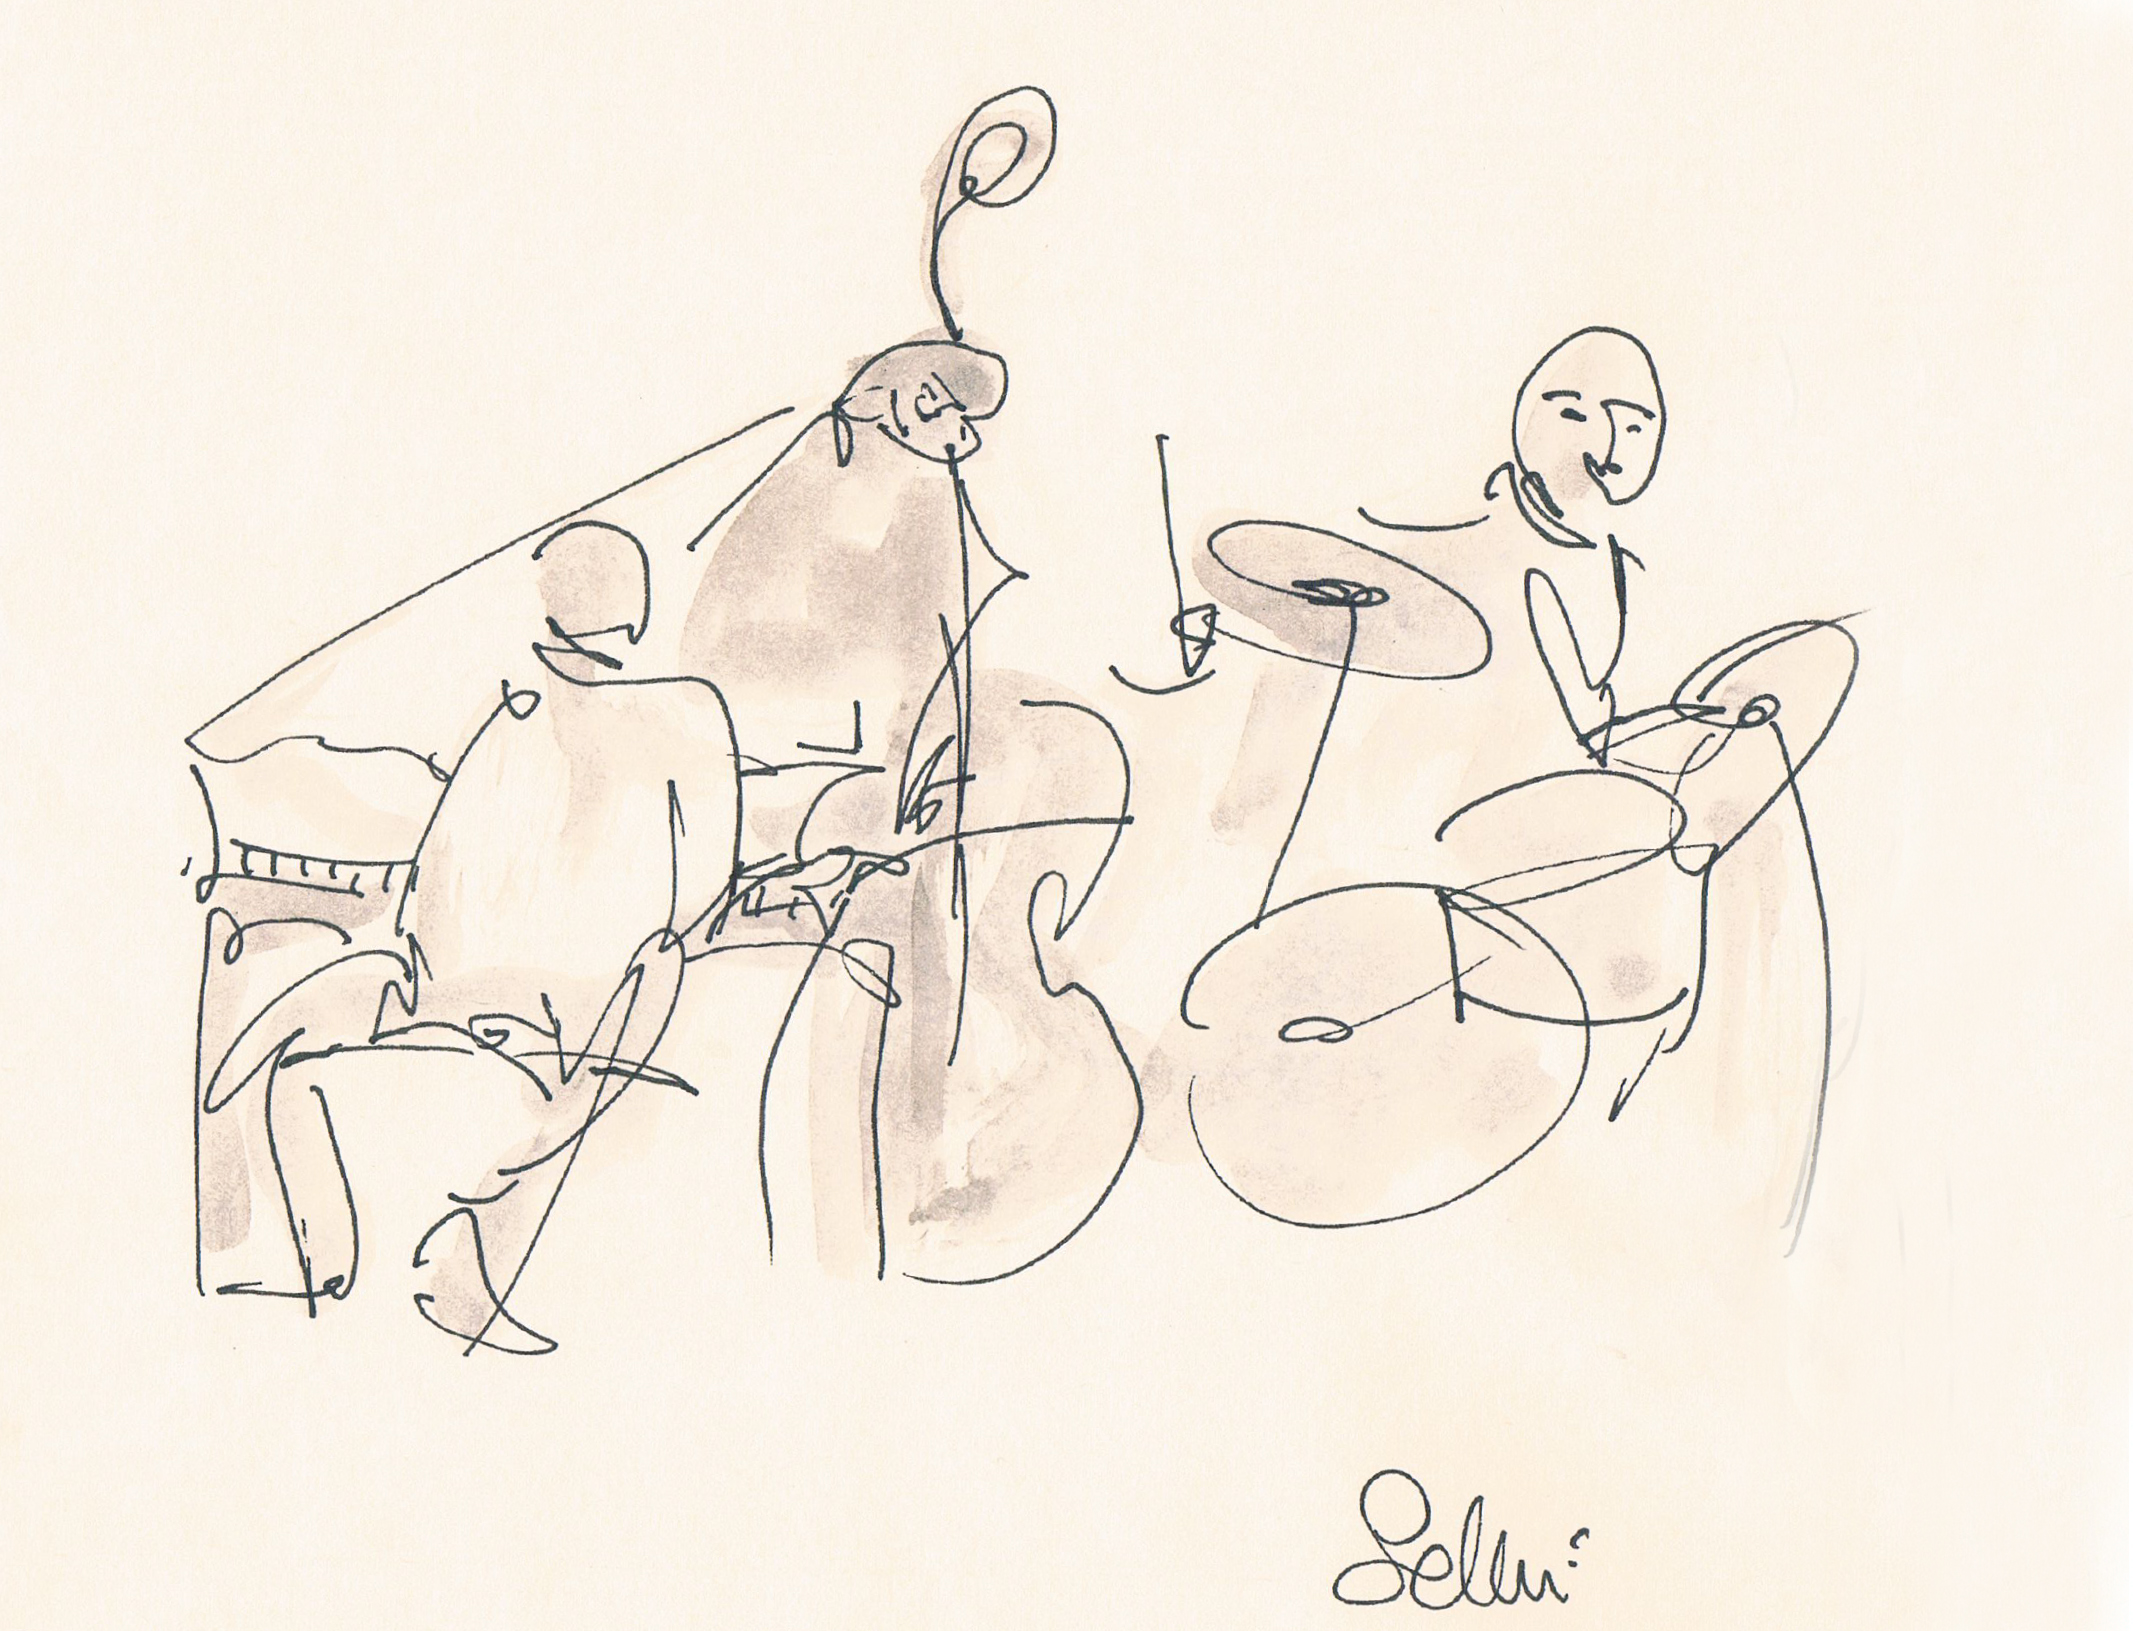 jazz drawings band 1